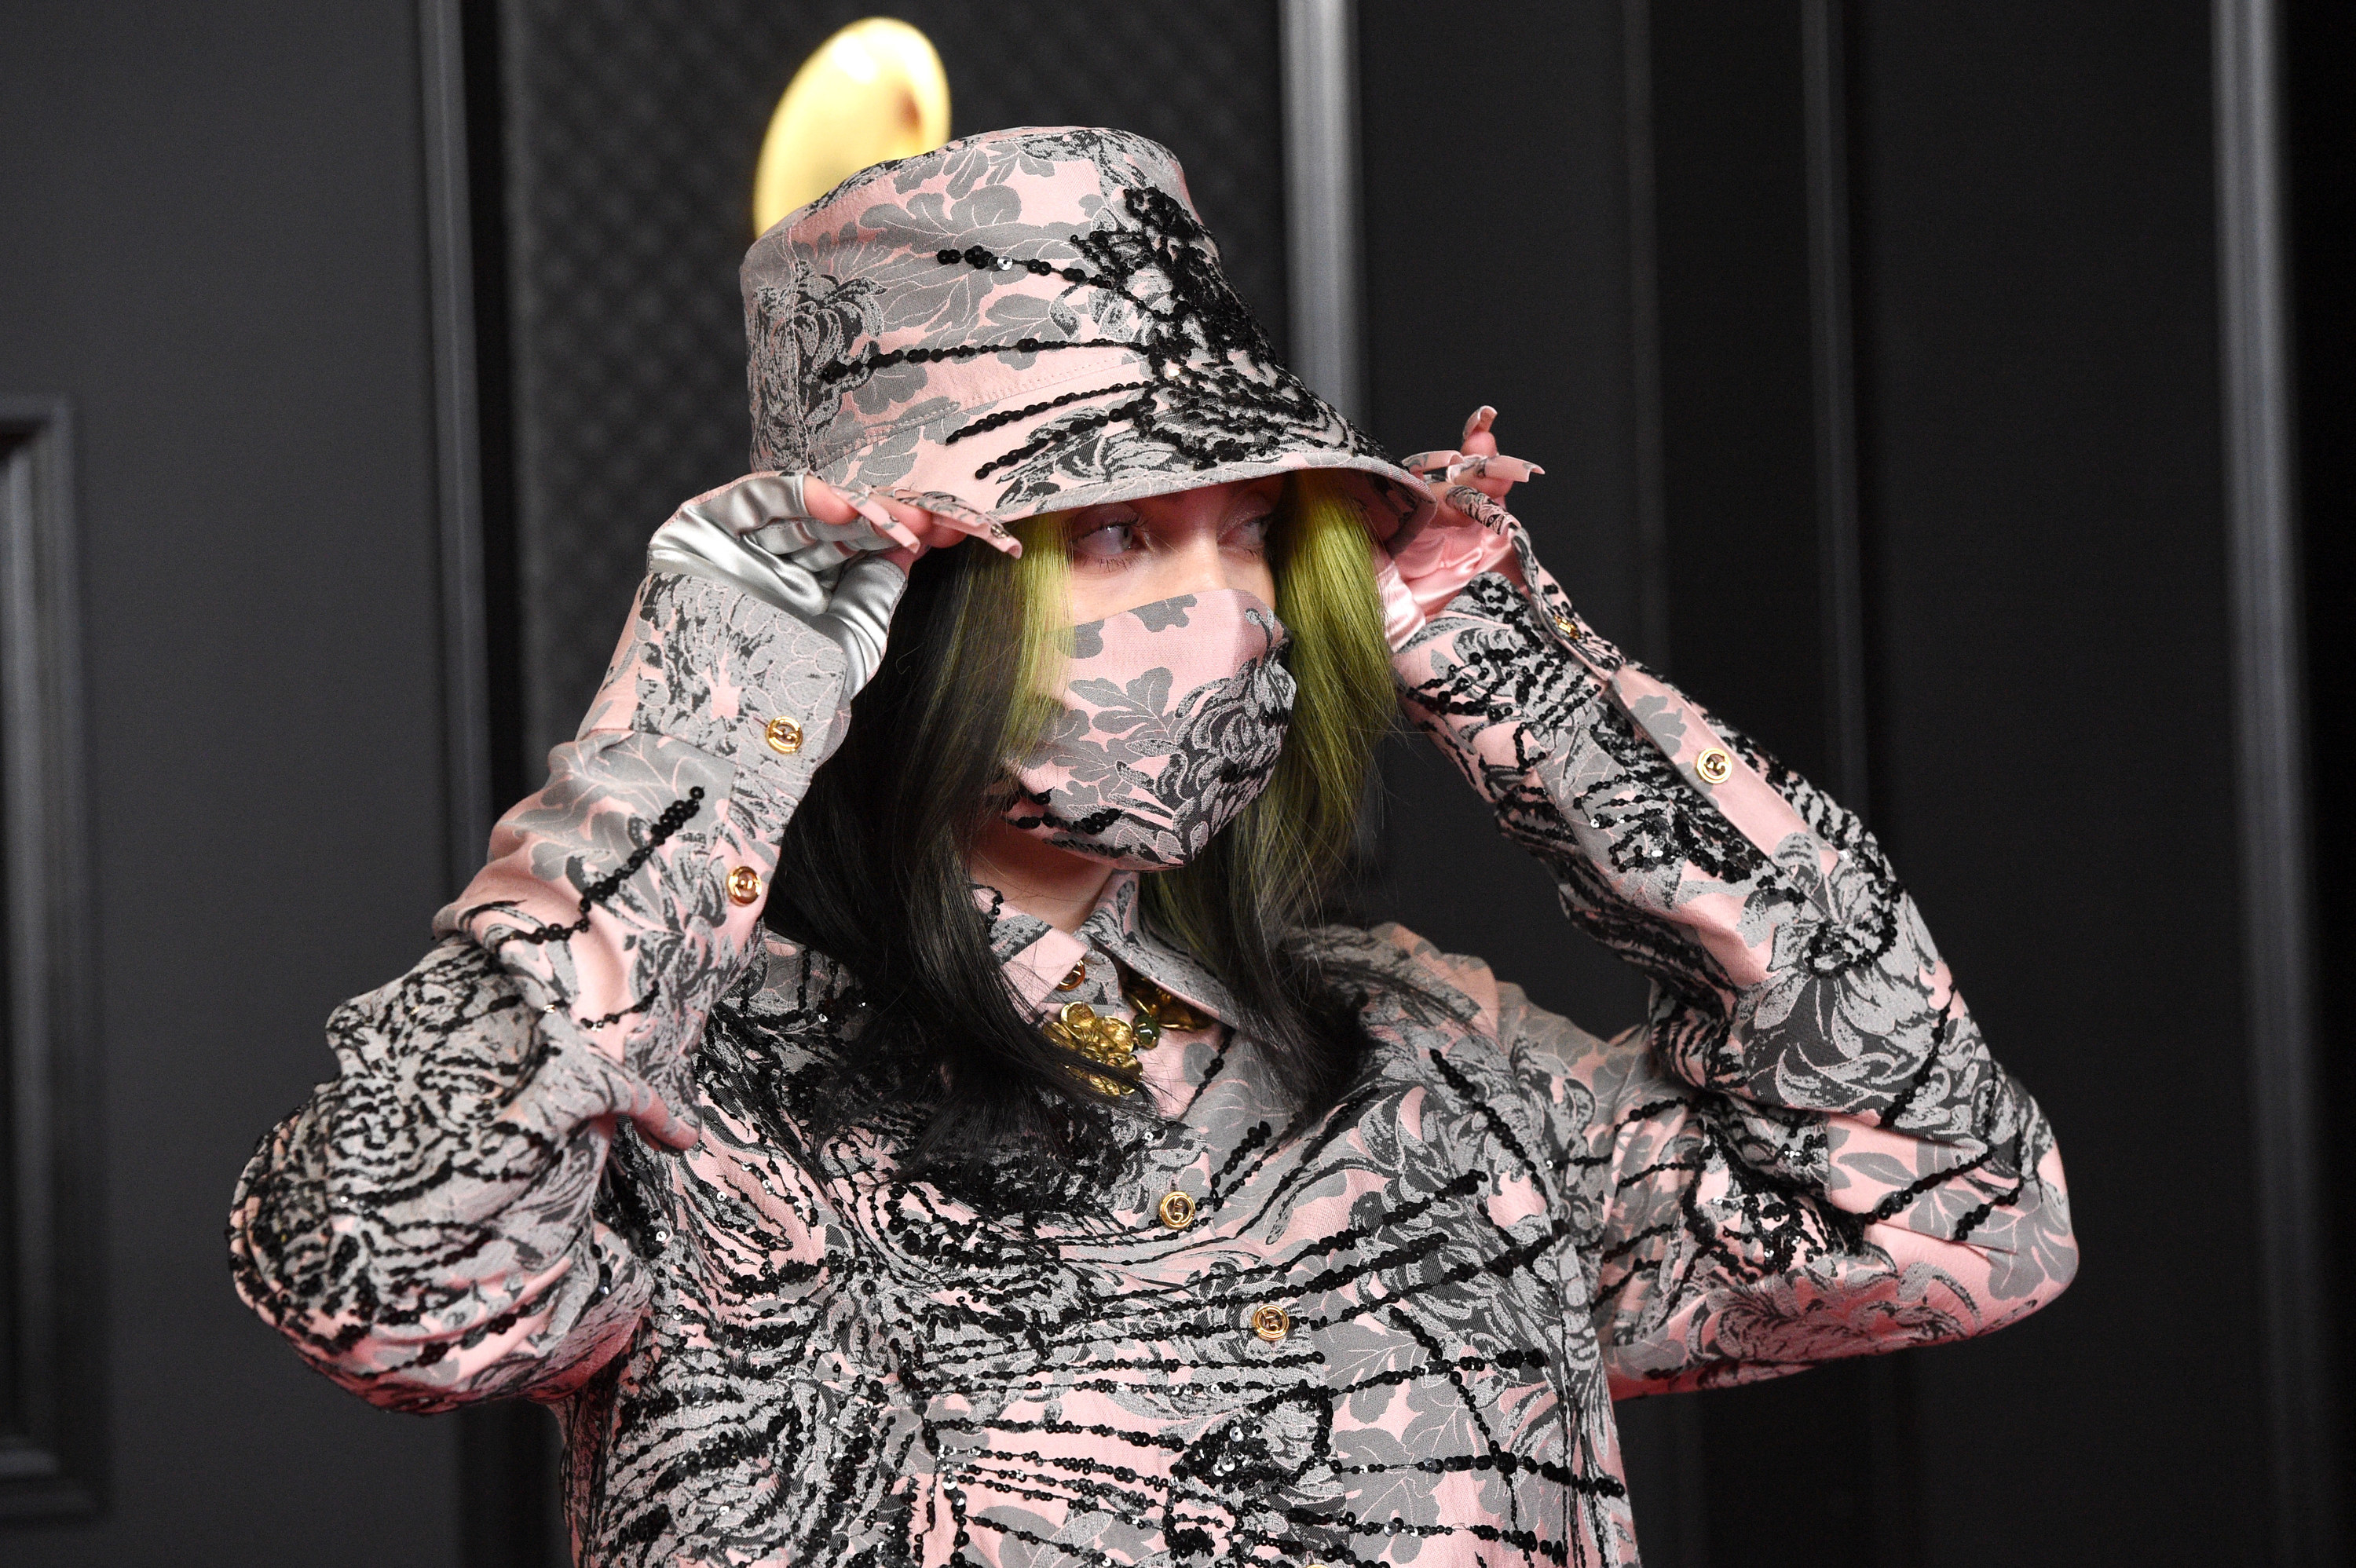 Billie wearing a matching pink, gray, and black print outfit, including brimmed hat and face mask